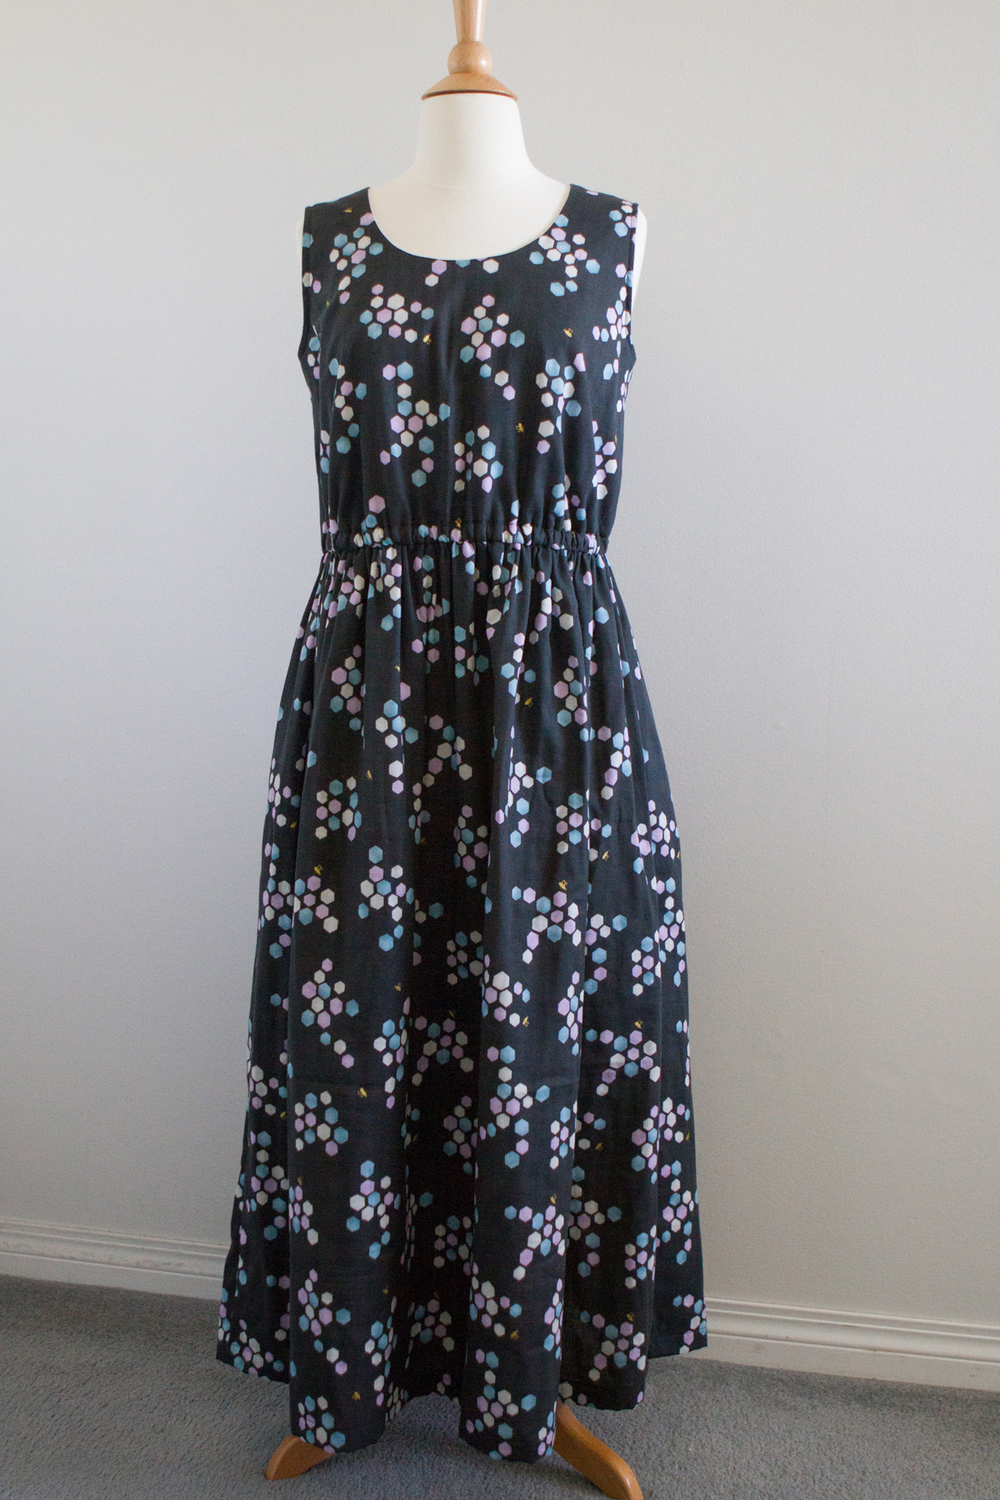 Flowy maxi dresses are the best in warmer weather!